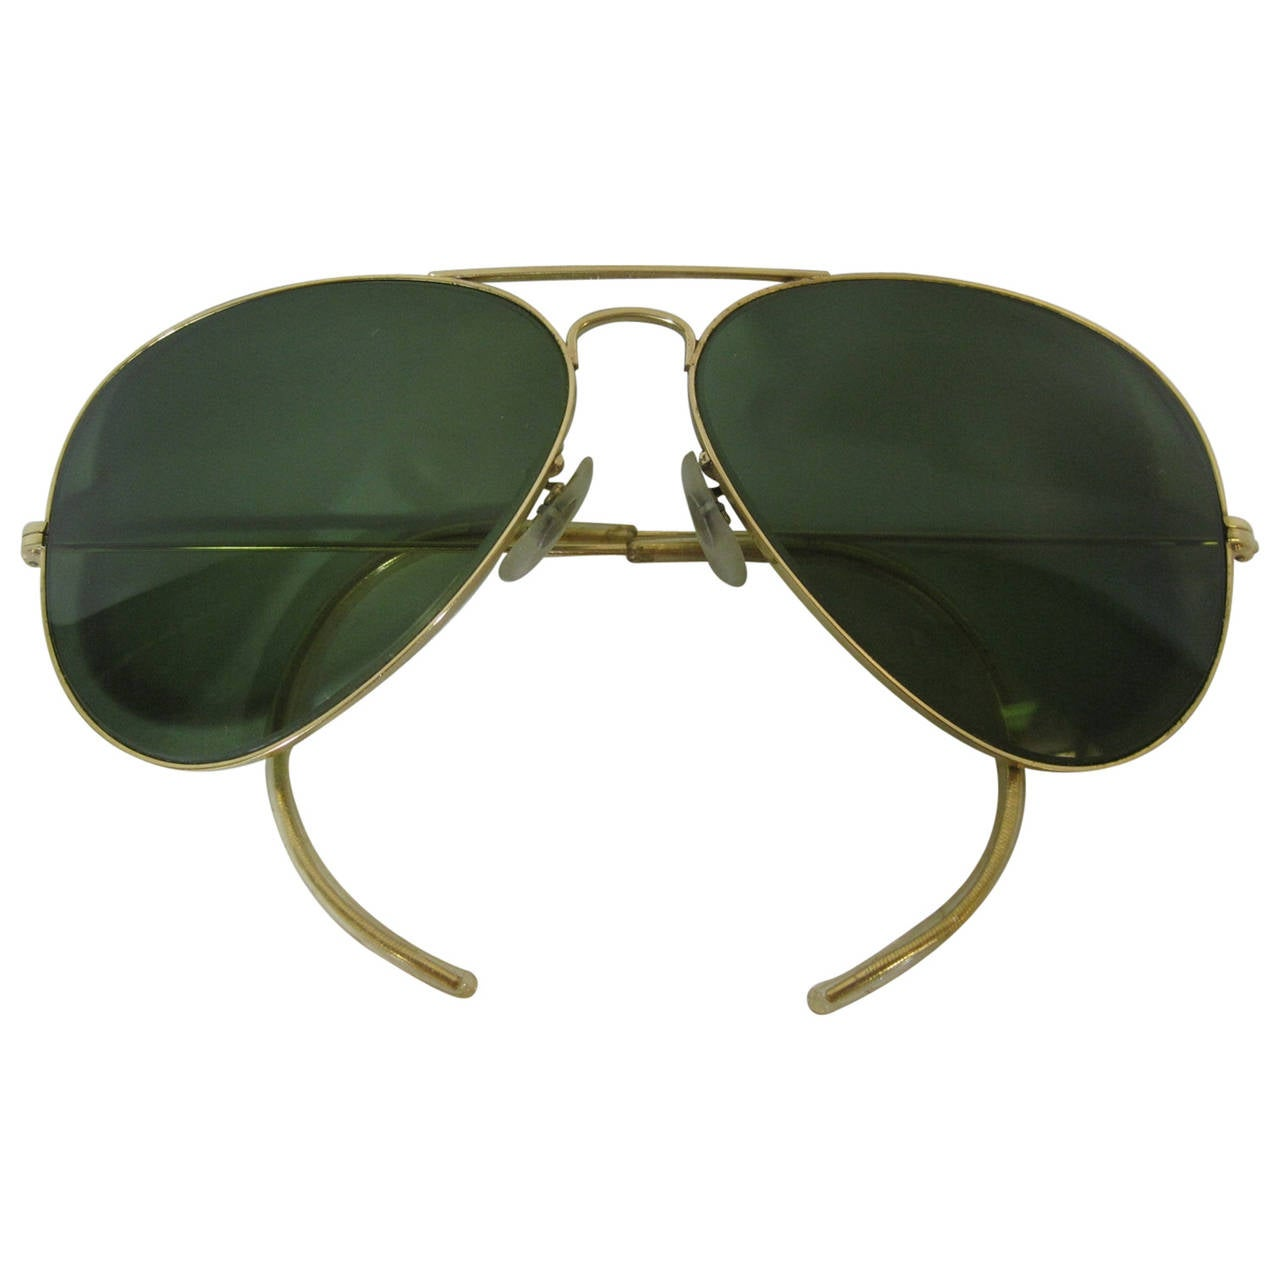 28e6edb7e Antique Ray Ban Aviator Glasses | SEMA Data Co-op